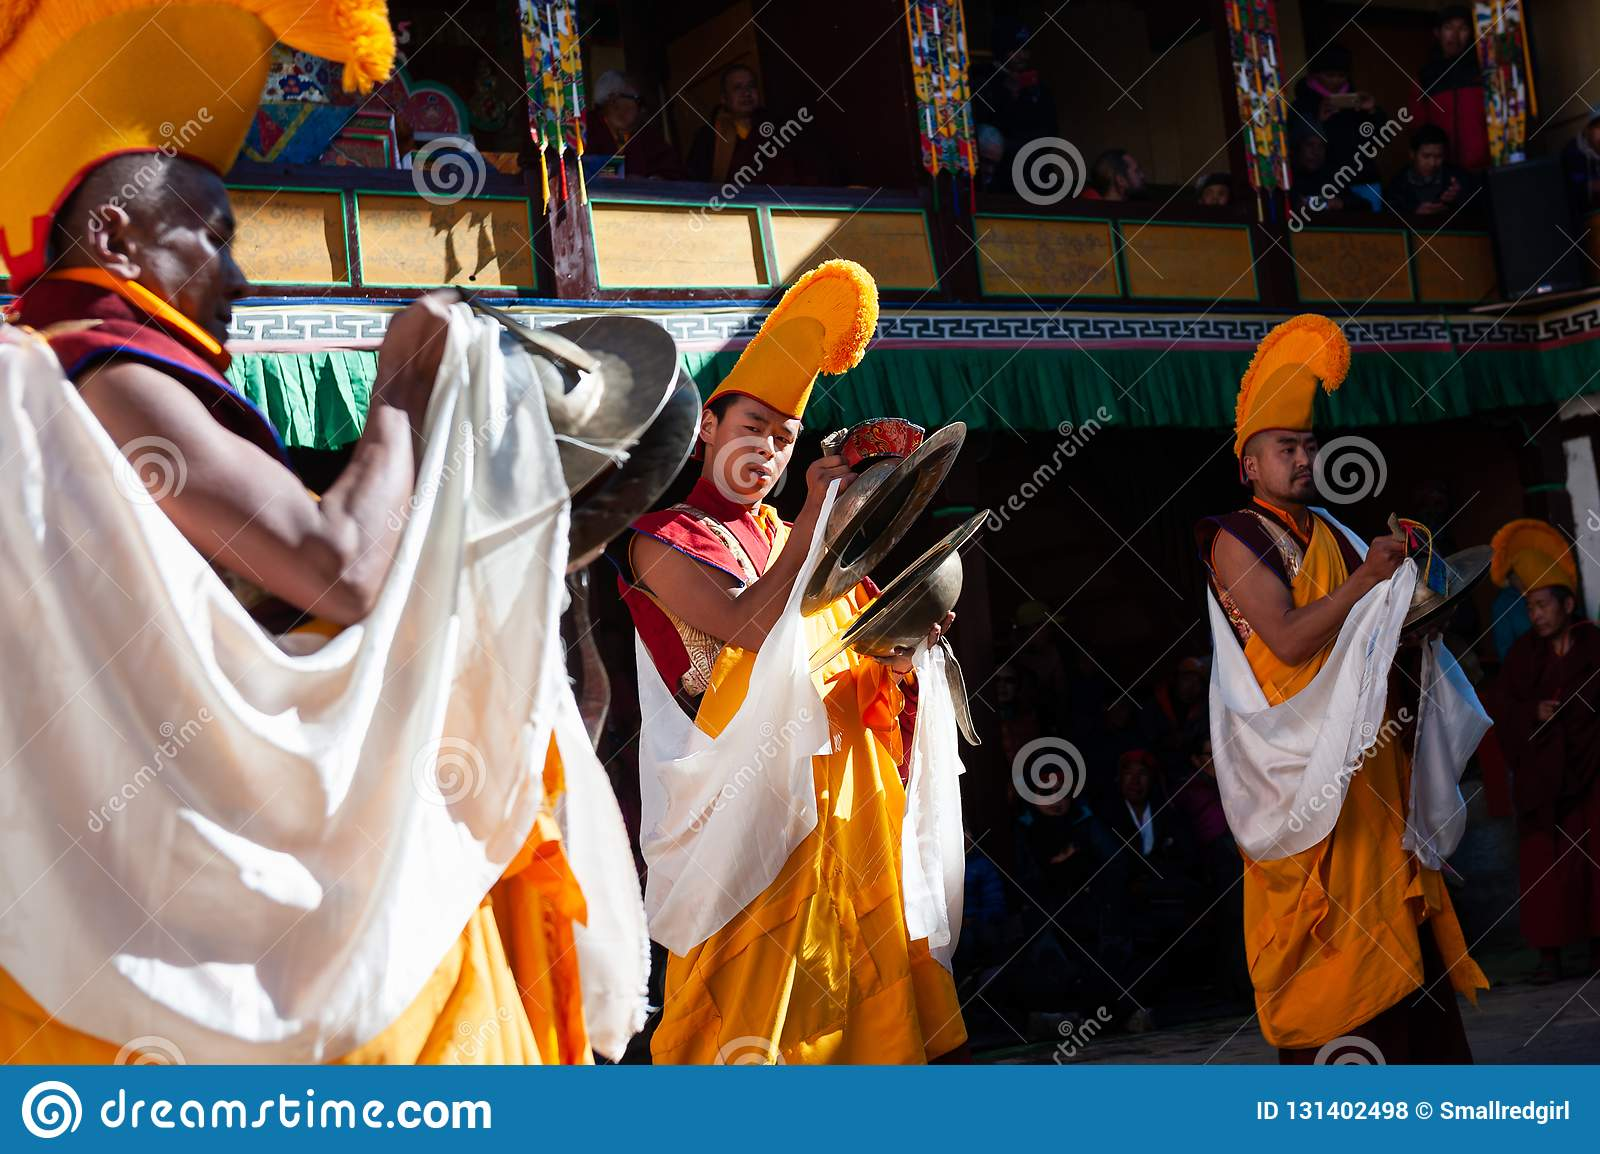 The monks perform religious buddhistic dance during the Mani Rimdu festival in Tengboche Monastery